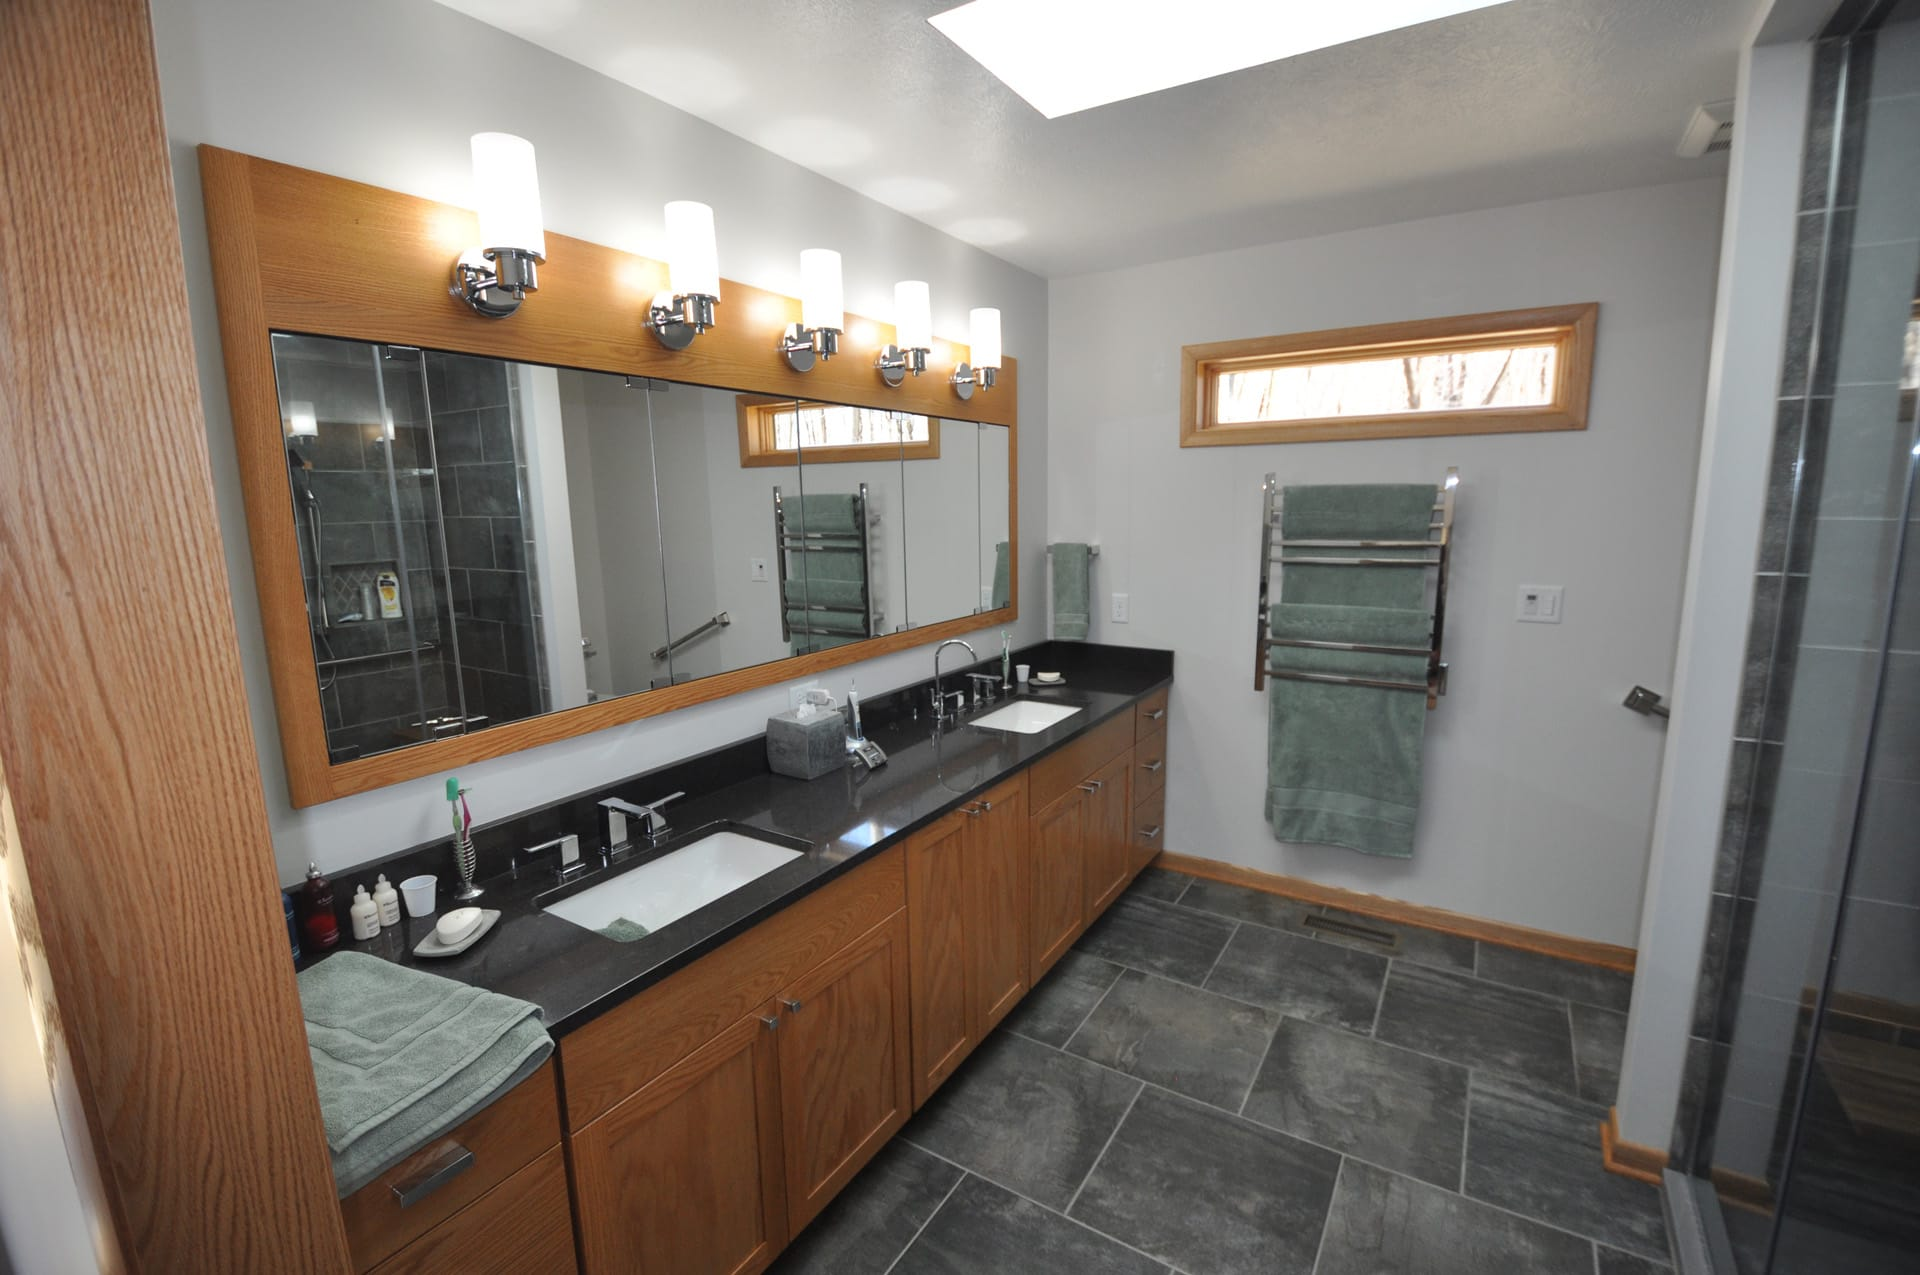 Large double vanity with heated wall-mounted towel warmer